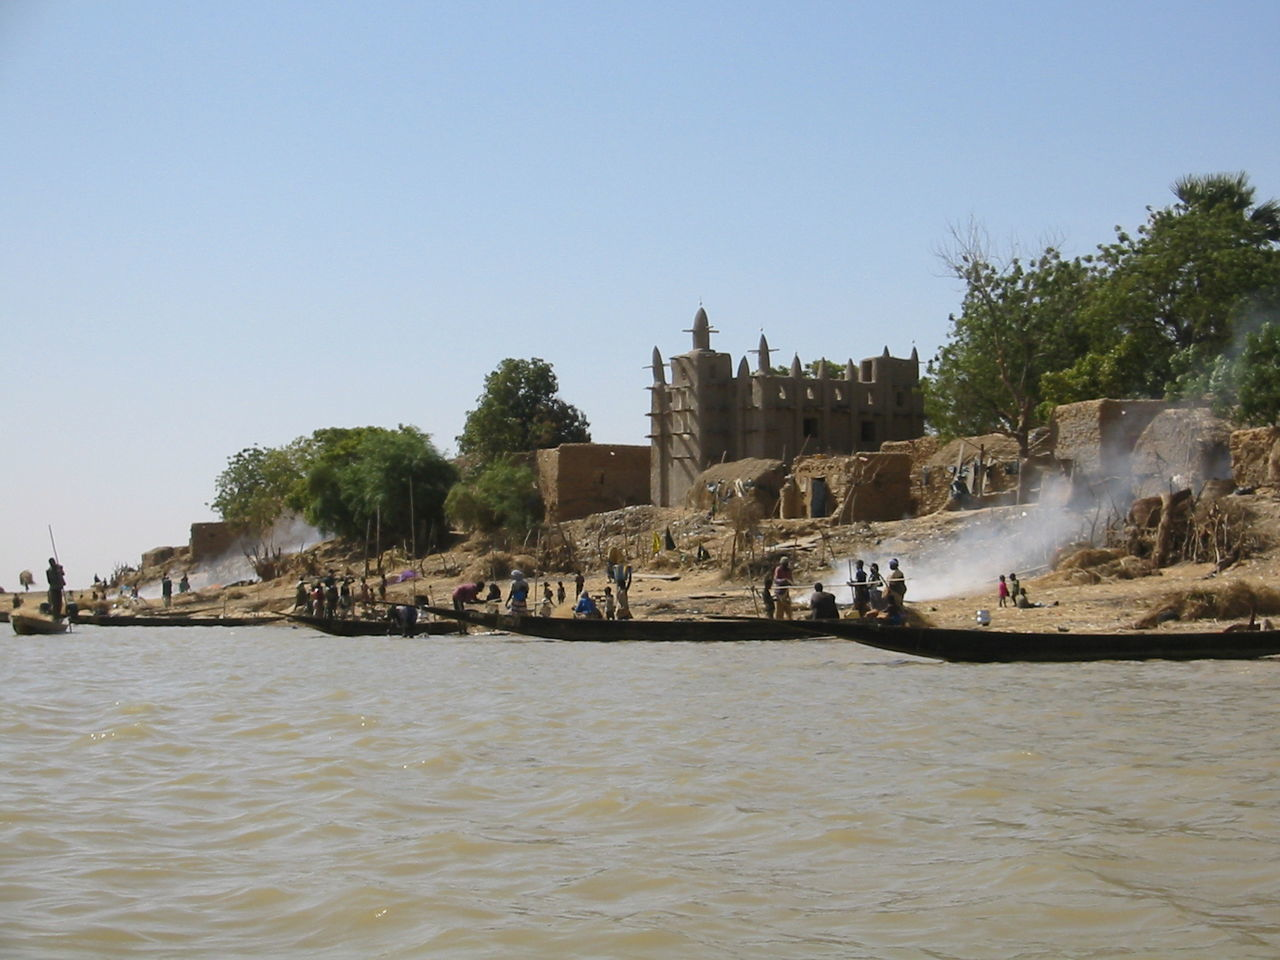 Activities on the riverside Ancient Civilization Clear Sky Life On The River Mosqée Niger River Outdoors People At Work Real People Riverside Water